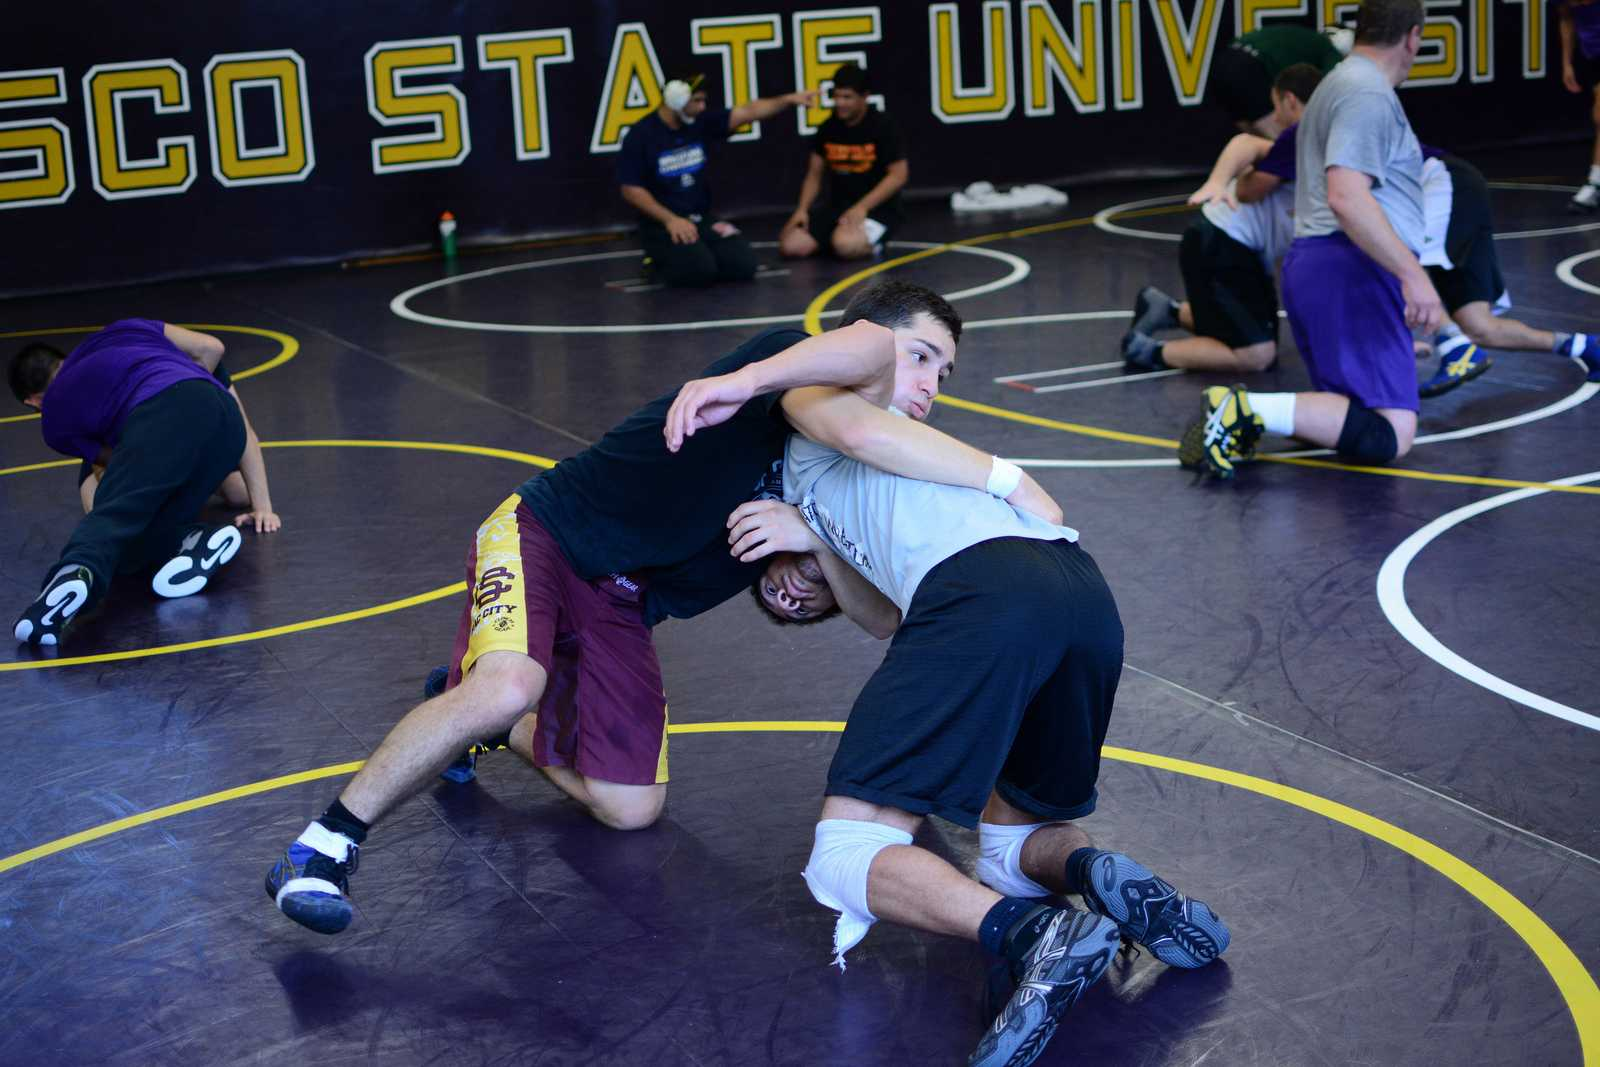 Senior Isaiah Hurtado (left), wrestles with senior Alex Williams (right), during practice at SF State on Friday, Oct. 11, 2013. Photo by Philip Houston / Xpress